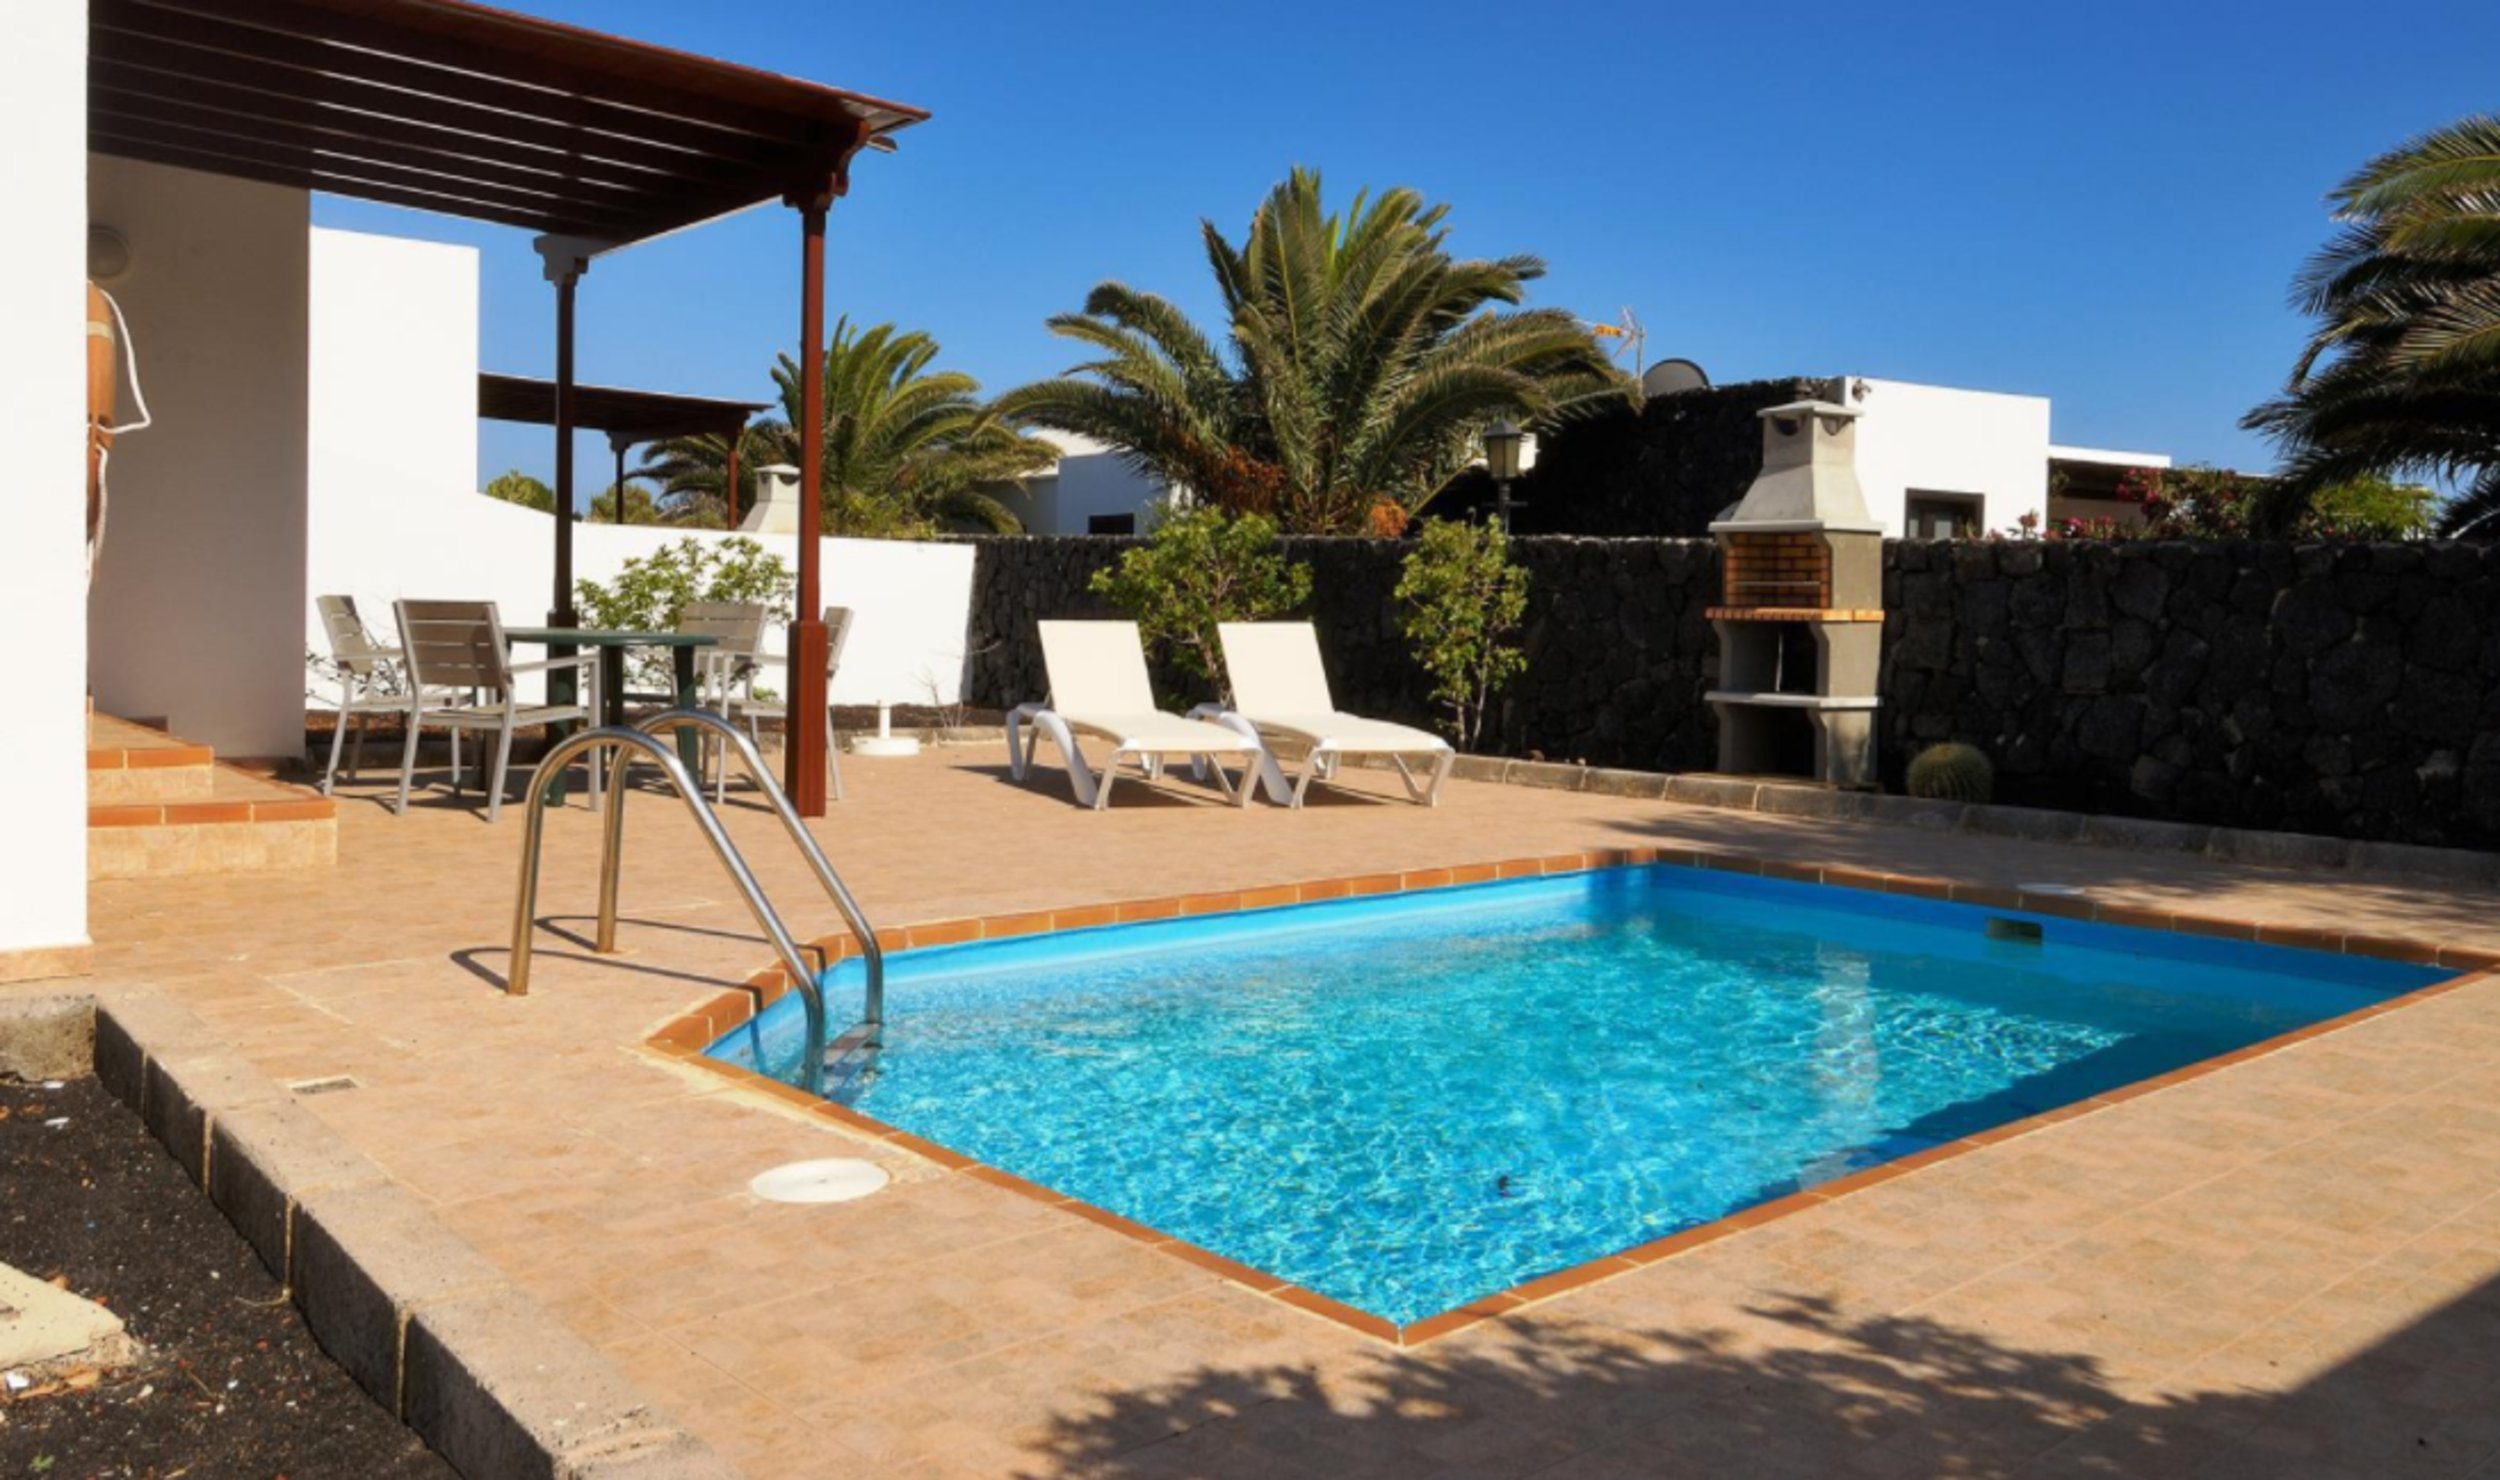 Apartment to rent in Playa Blanca Lanzarote with private pool